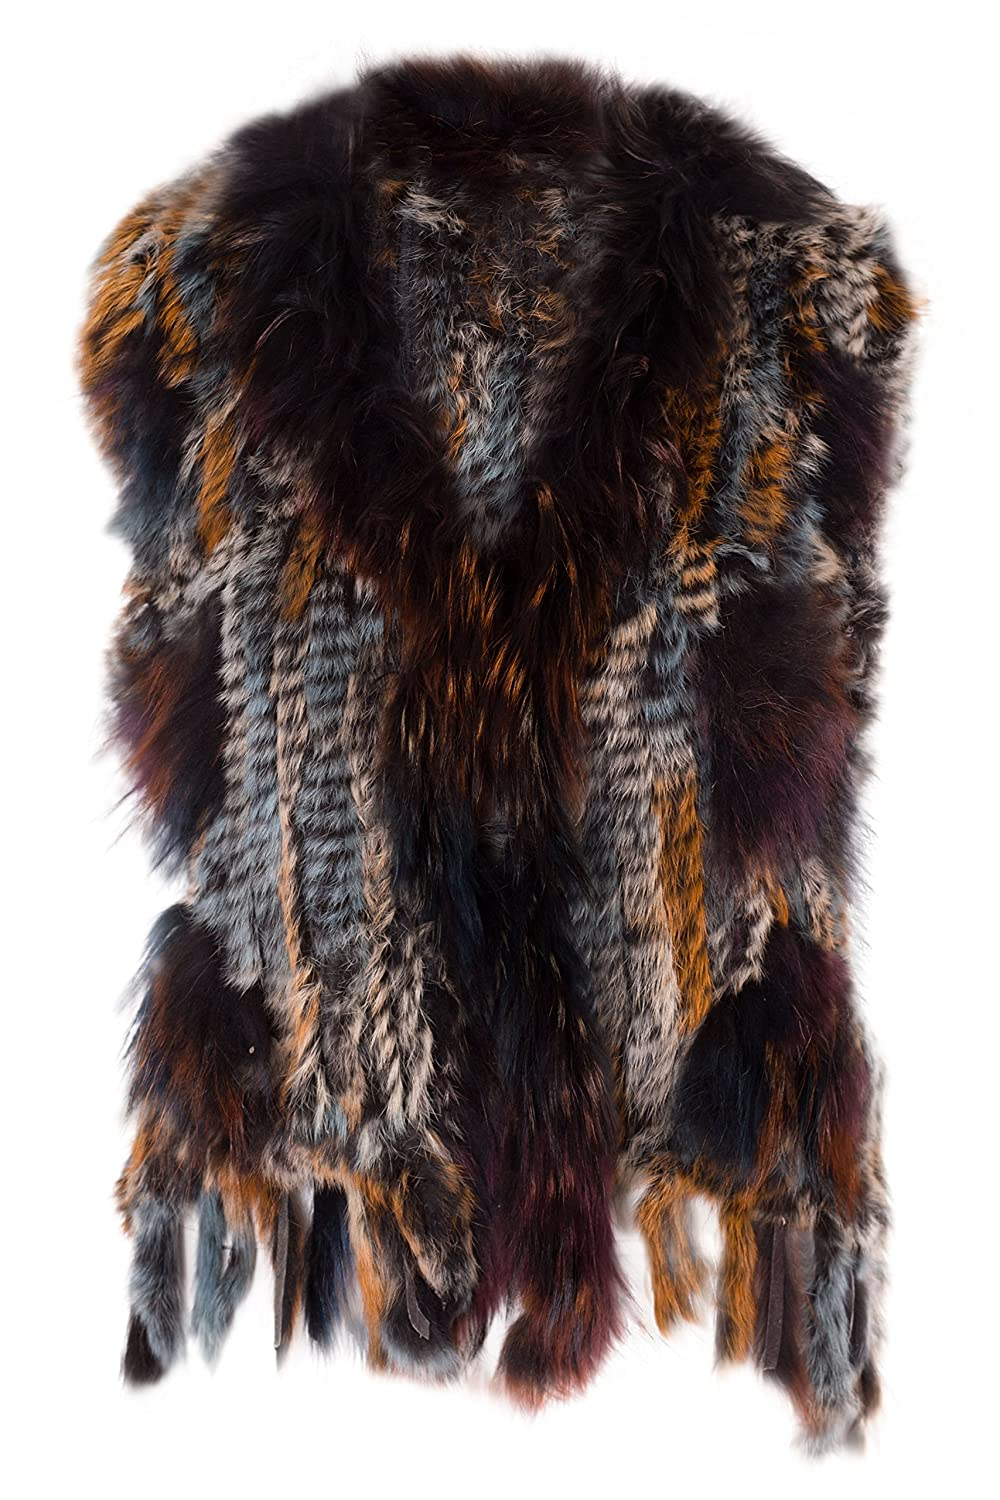 NOROZE Womens Vest Rabbit Fur with Raccoon Fur Trim Gilet Sleeveless Tassels Top